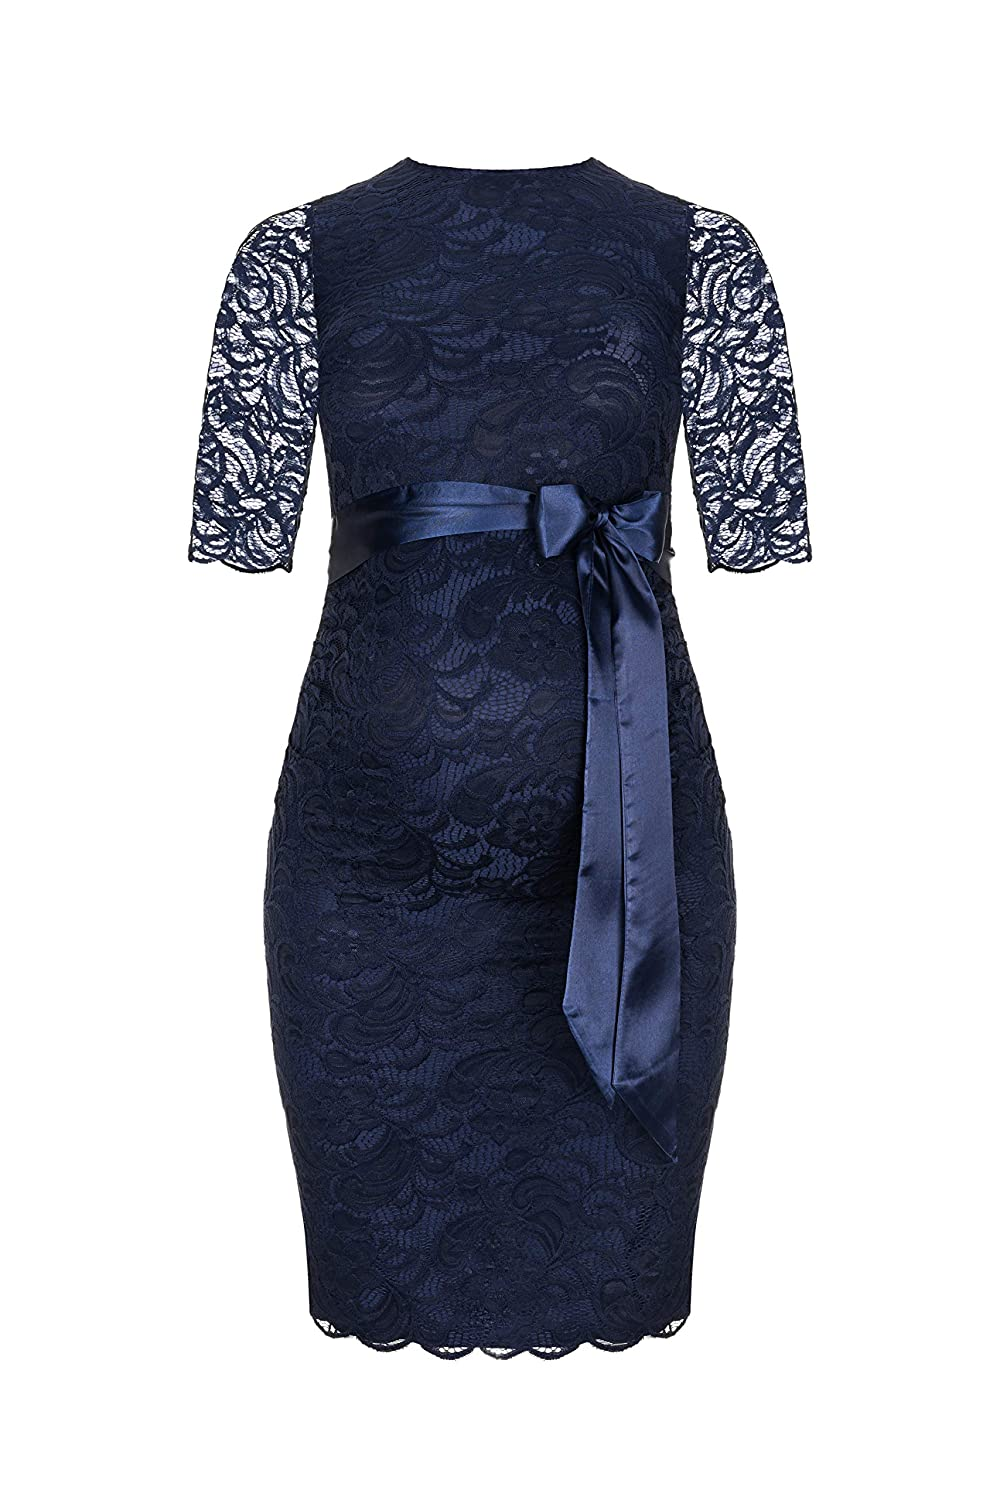 Herzmutter Maternity lace Dress, Elegant Knee-Length Pregnancy Dress for Festive Occasions, with Cotton-Blend lace, Cream-White Dark Blue (6200)